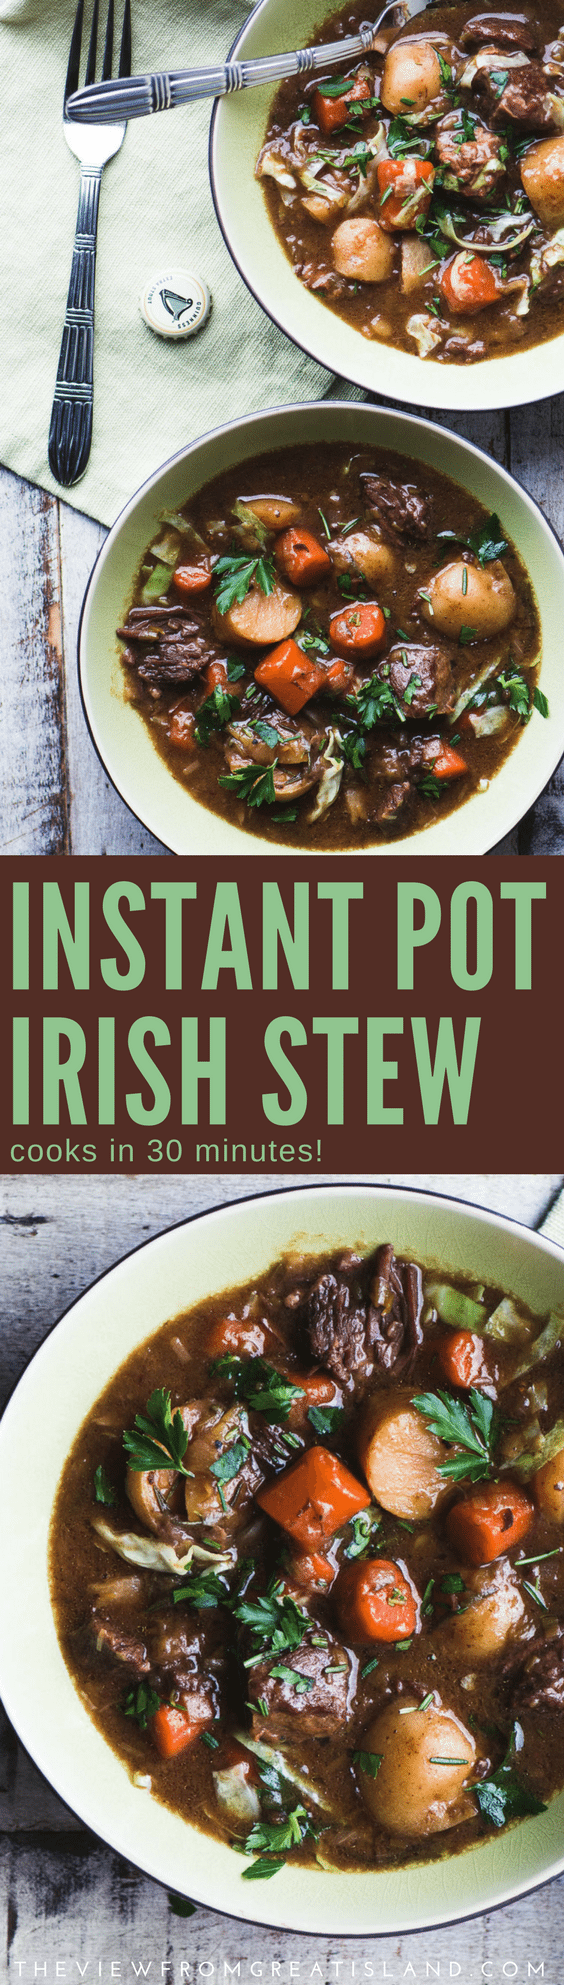 Instant Pot Irish Stew is the real deal, a classic rich stew made with lamb, potatoes, root veggies, cabbage, and, of course, a good dose of Guinnesss. Only instead of simmering long hours on the stove, this stew cooks in just 30 minutes! #Instantpot #slowcooker #crockpot #stew #irishstew #stpatricksday #lambstew #lamb #beef #beefstew